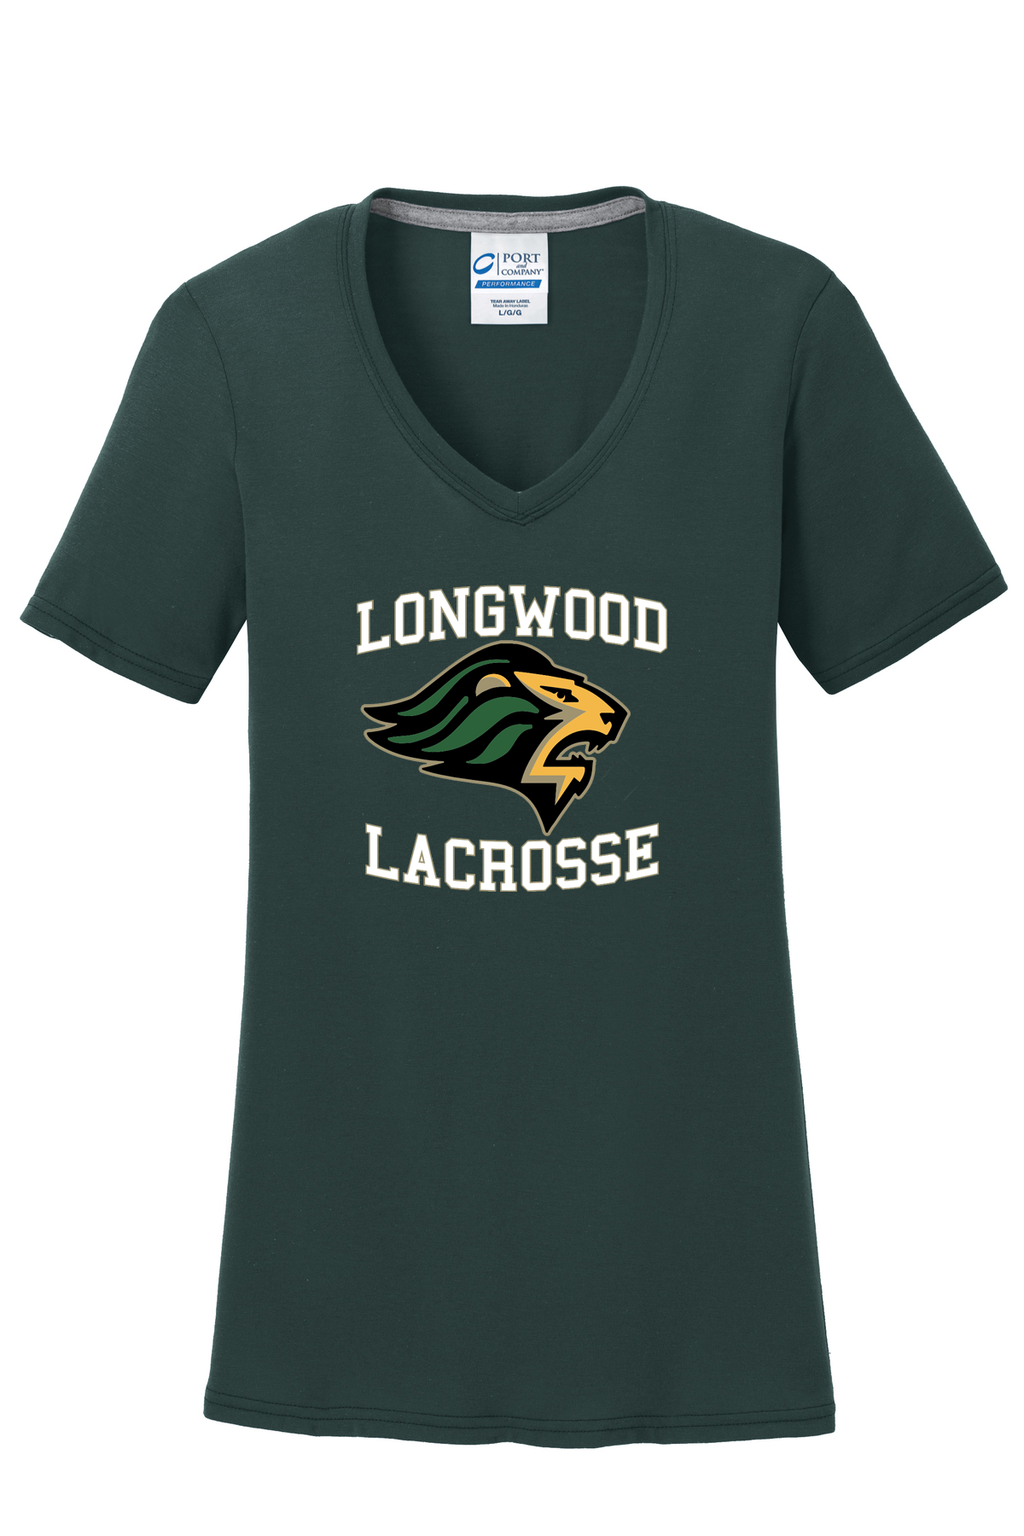 Longwood Lacrosse Women's Green T-Shirt